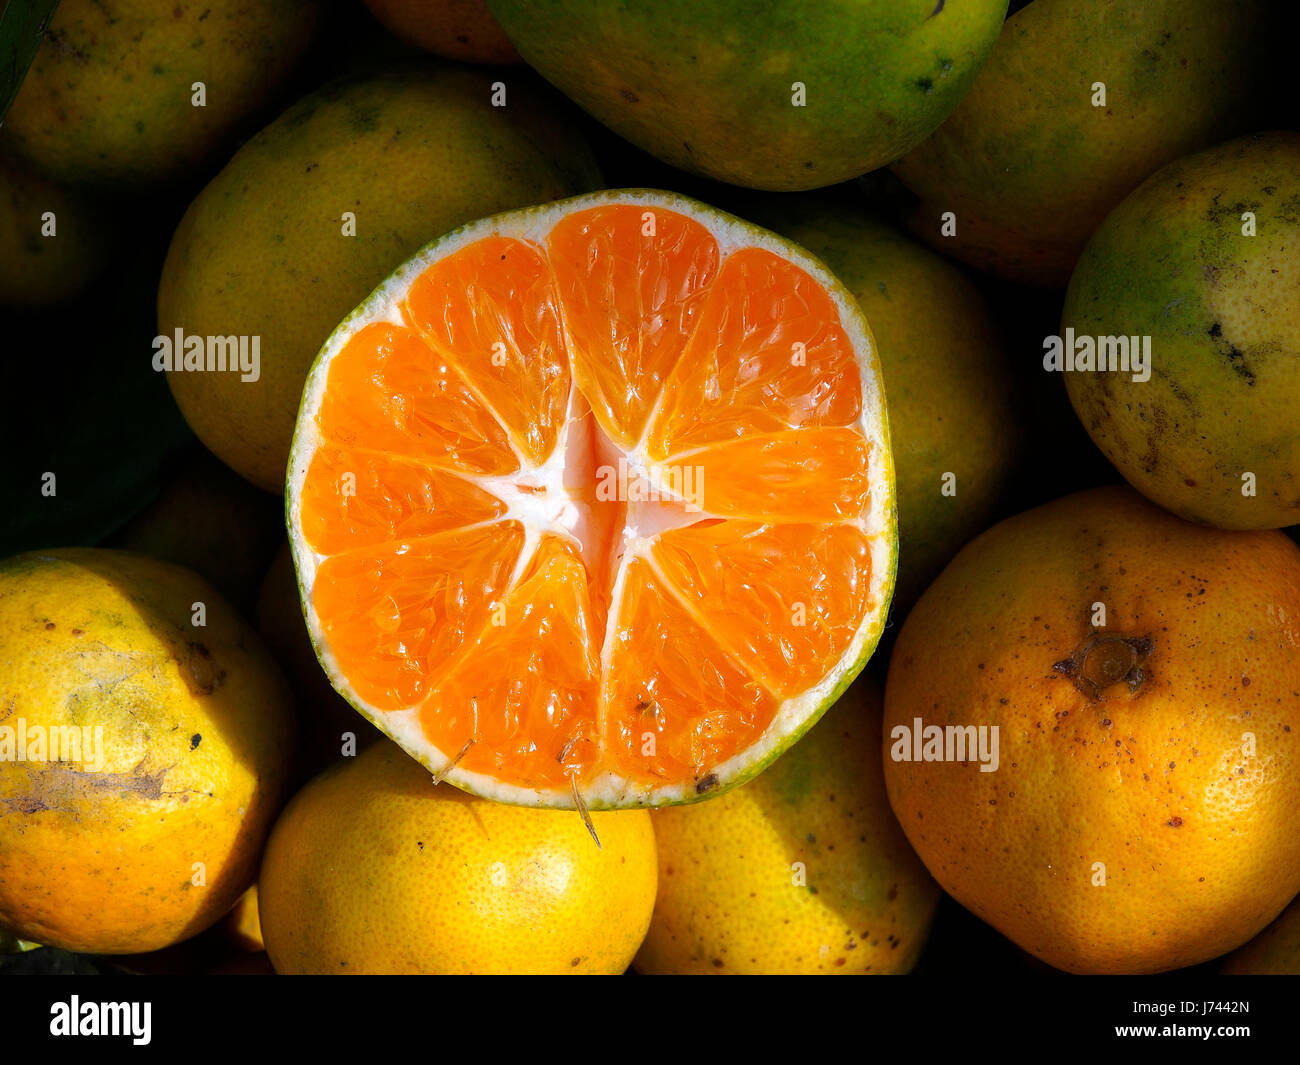 how to cut a tangerine